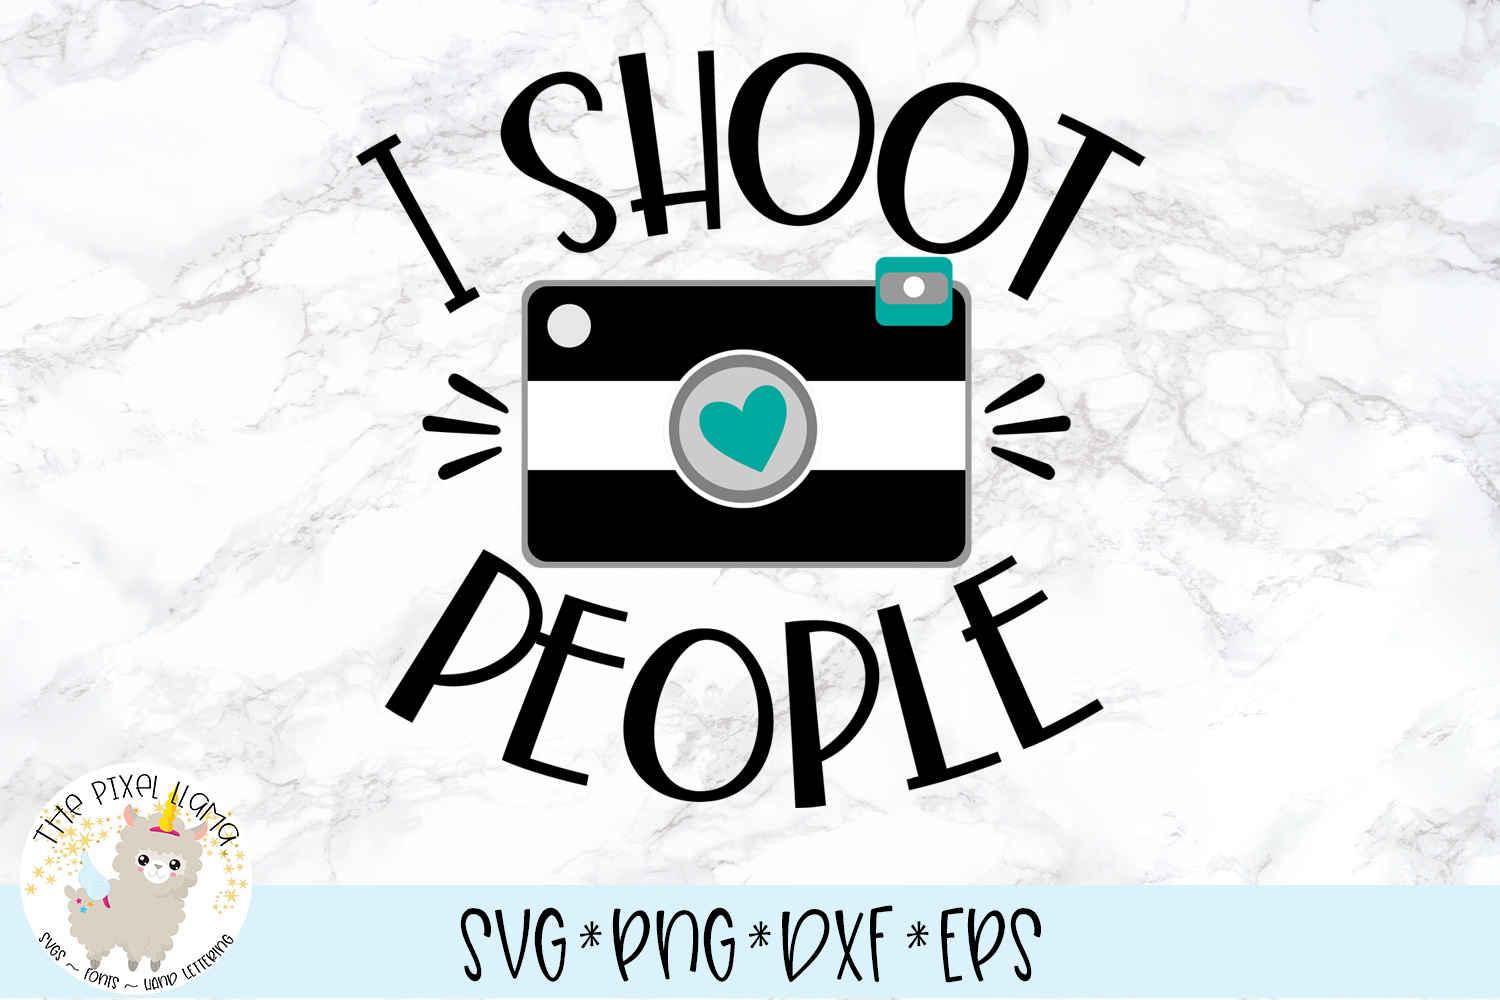 I Shoot People Photography SVG Cut File example image 1